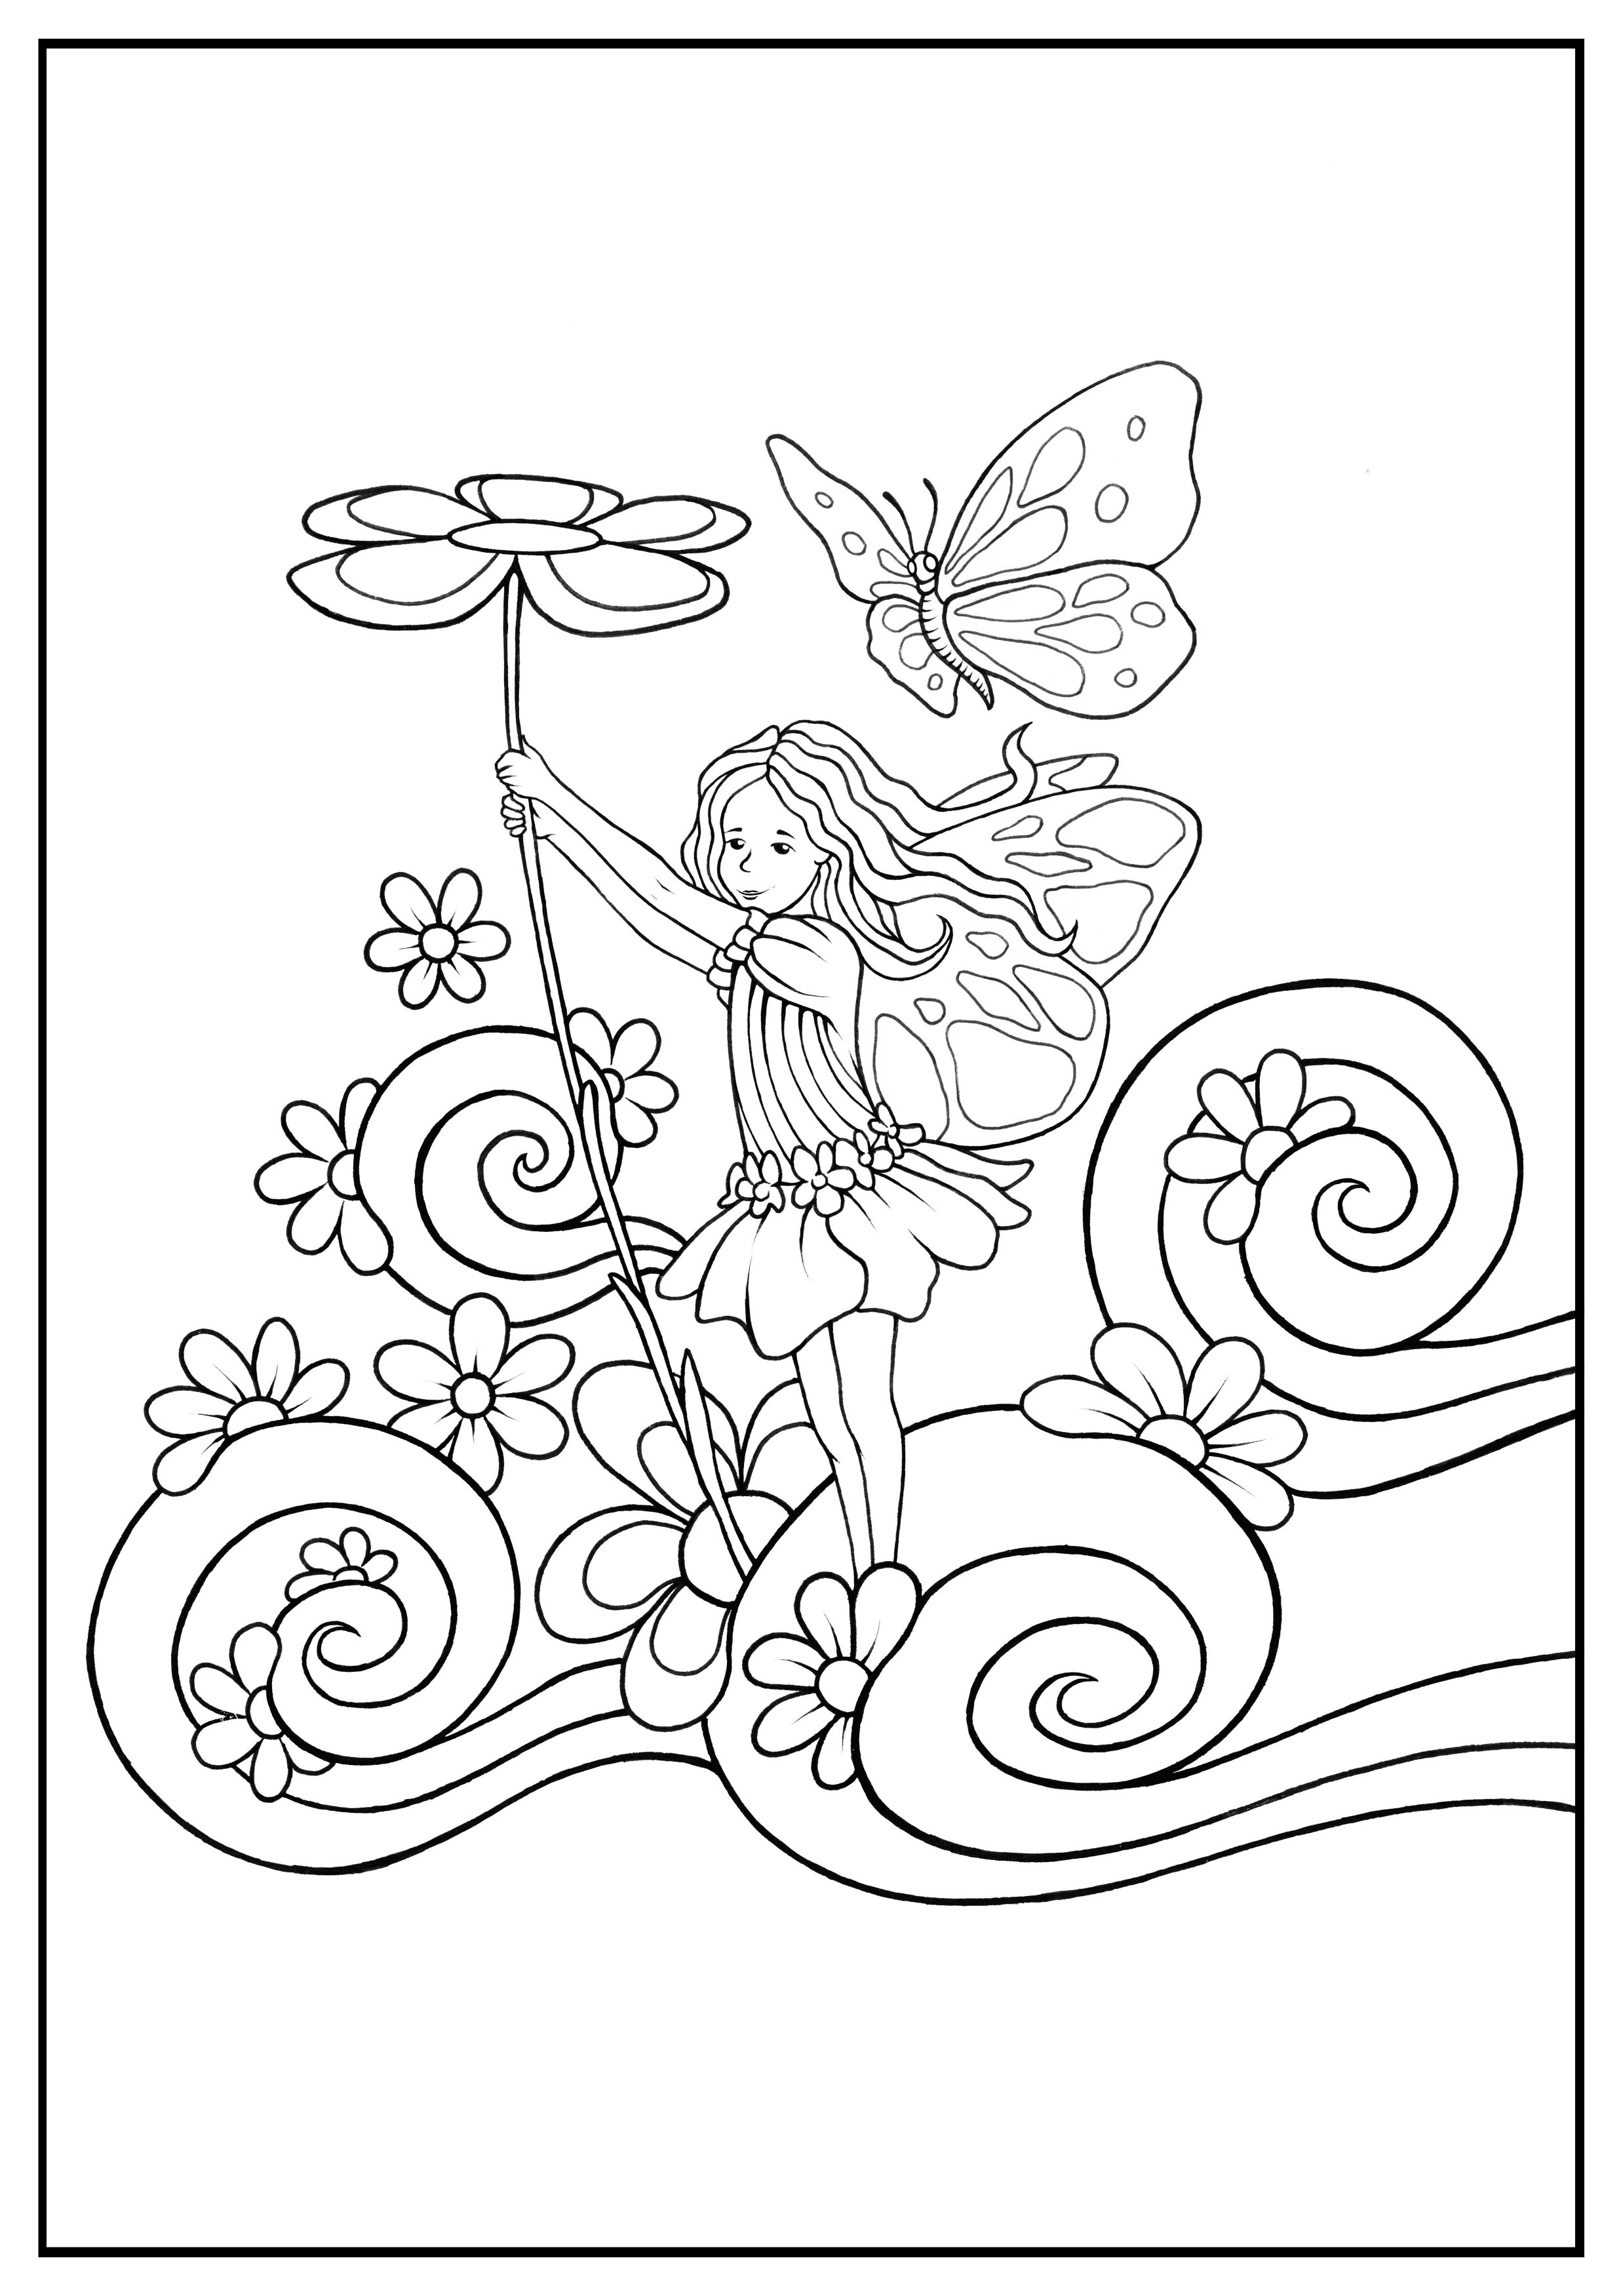 Simple Fairy coloring page